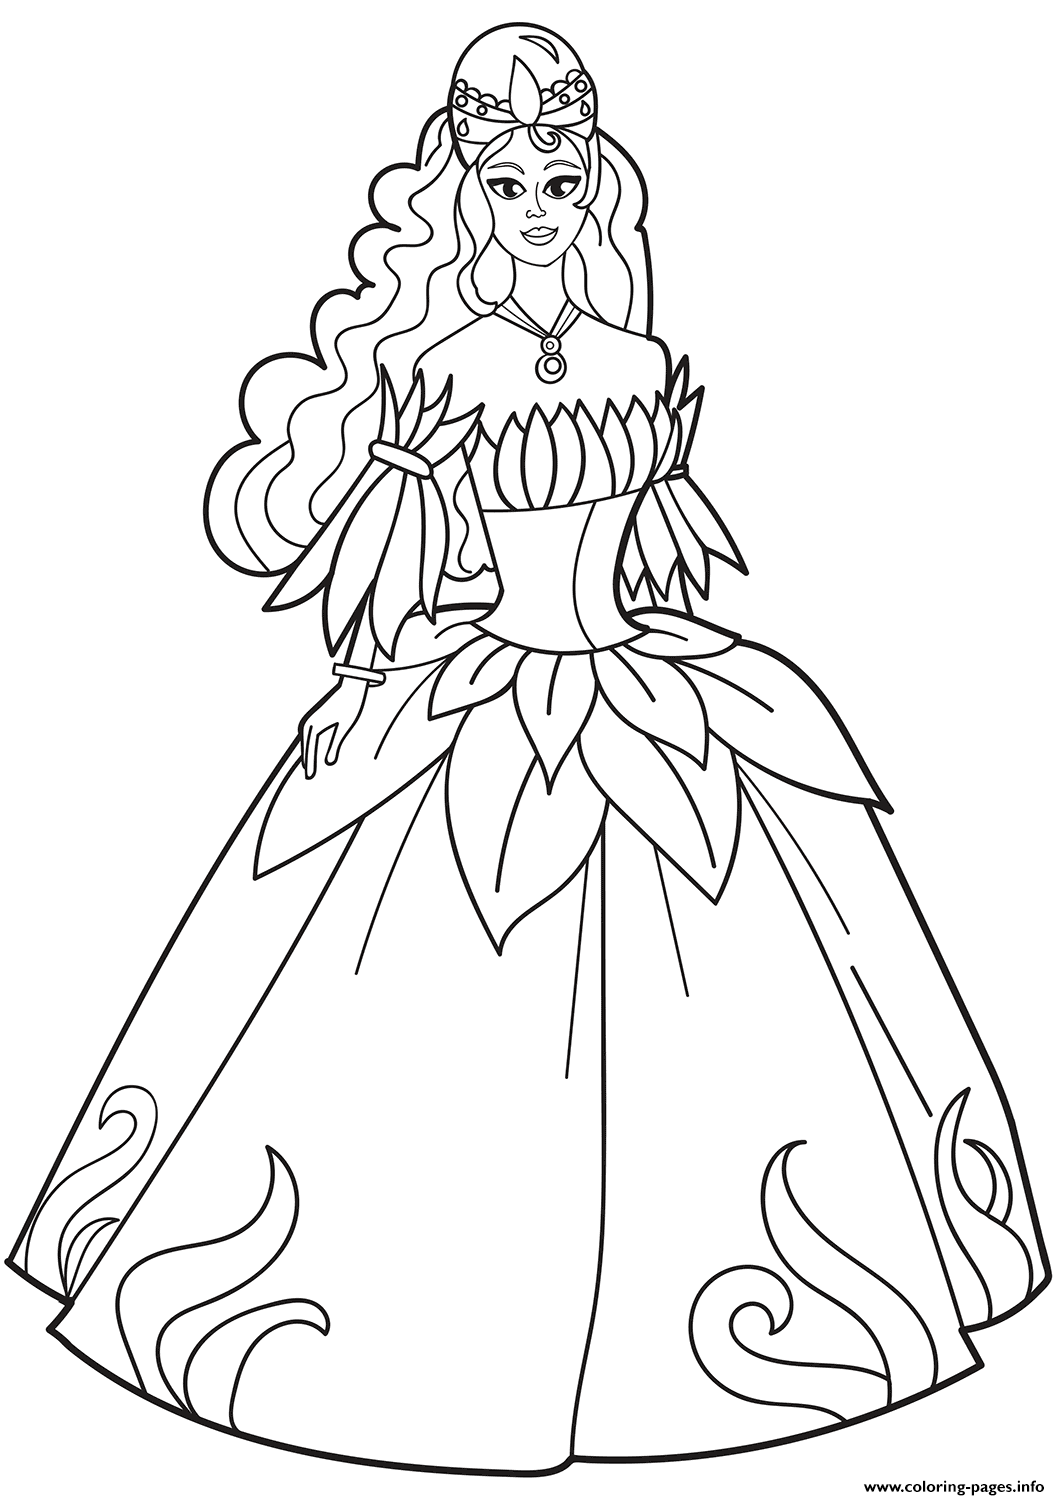 coloring page dress lady in pretty dress coloring page free clothing coloring page dress